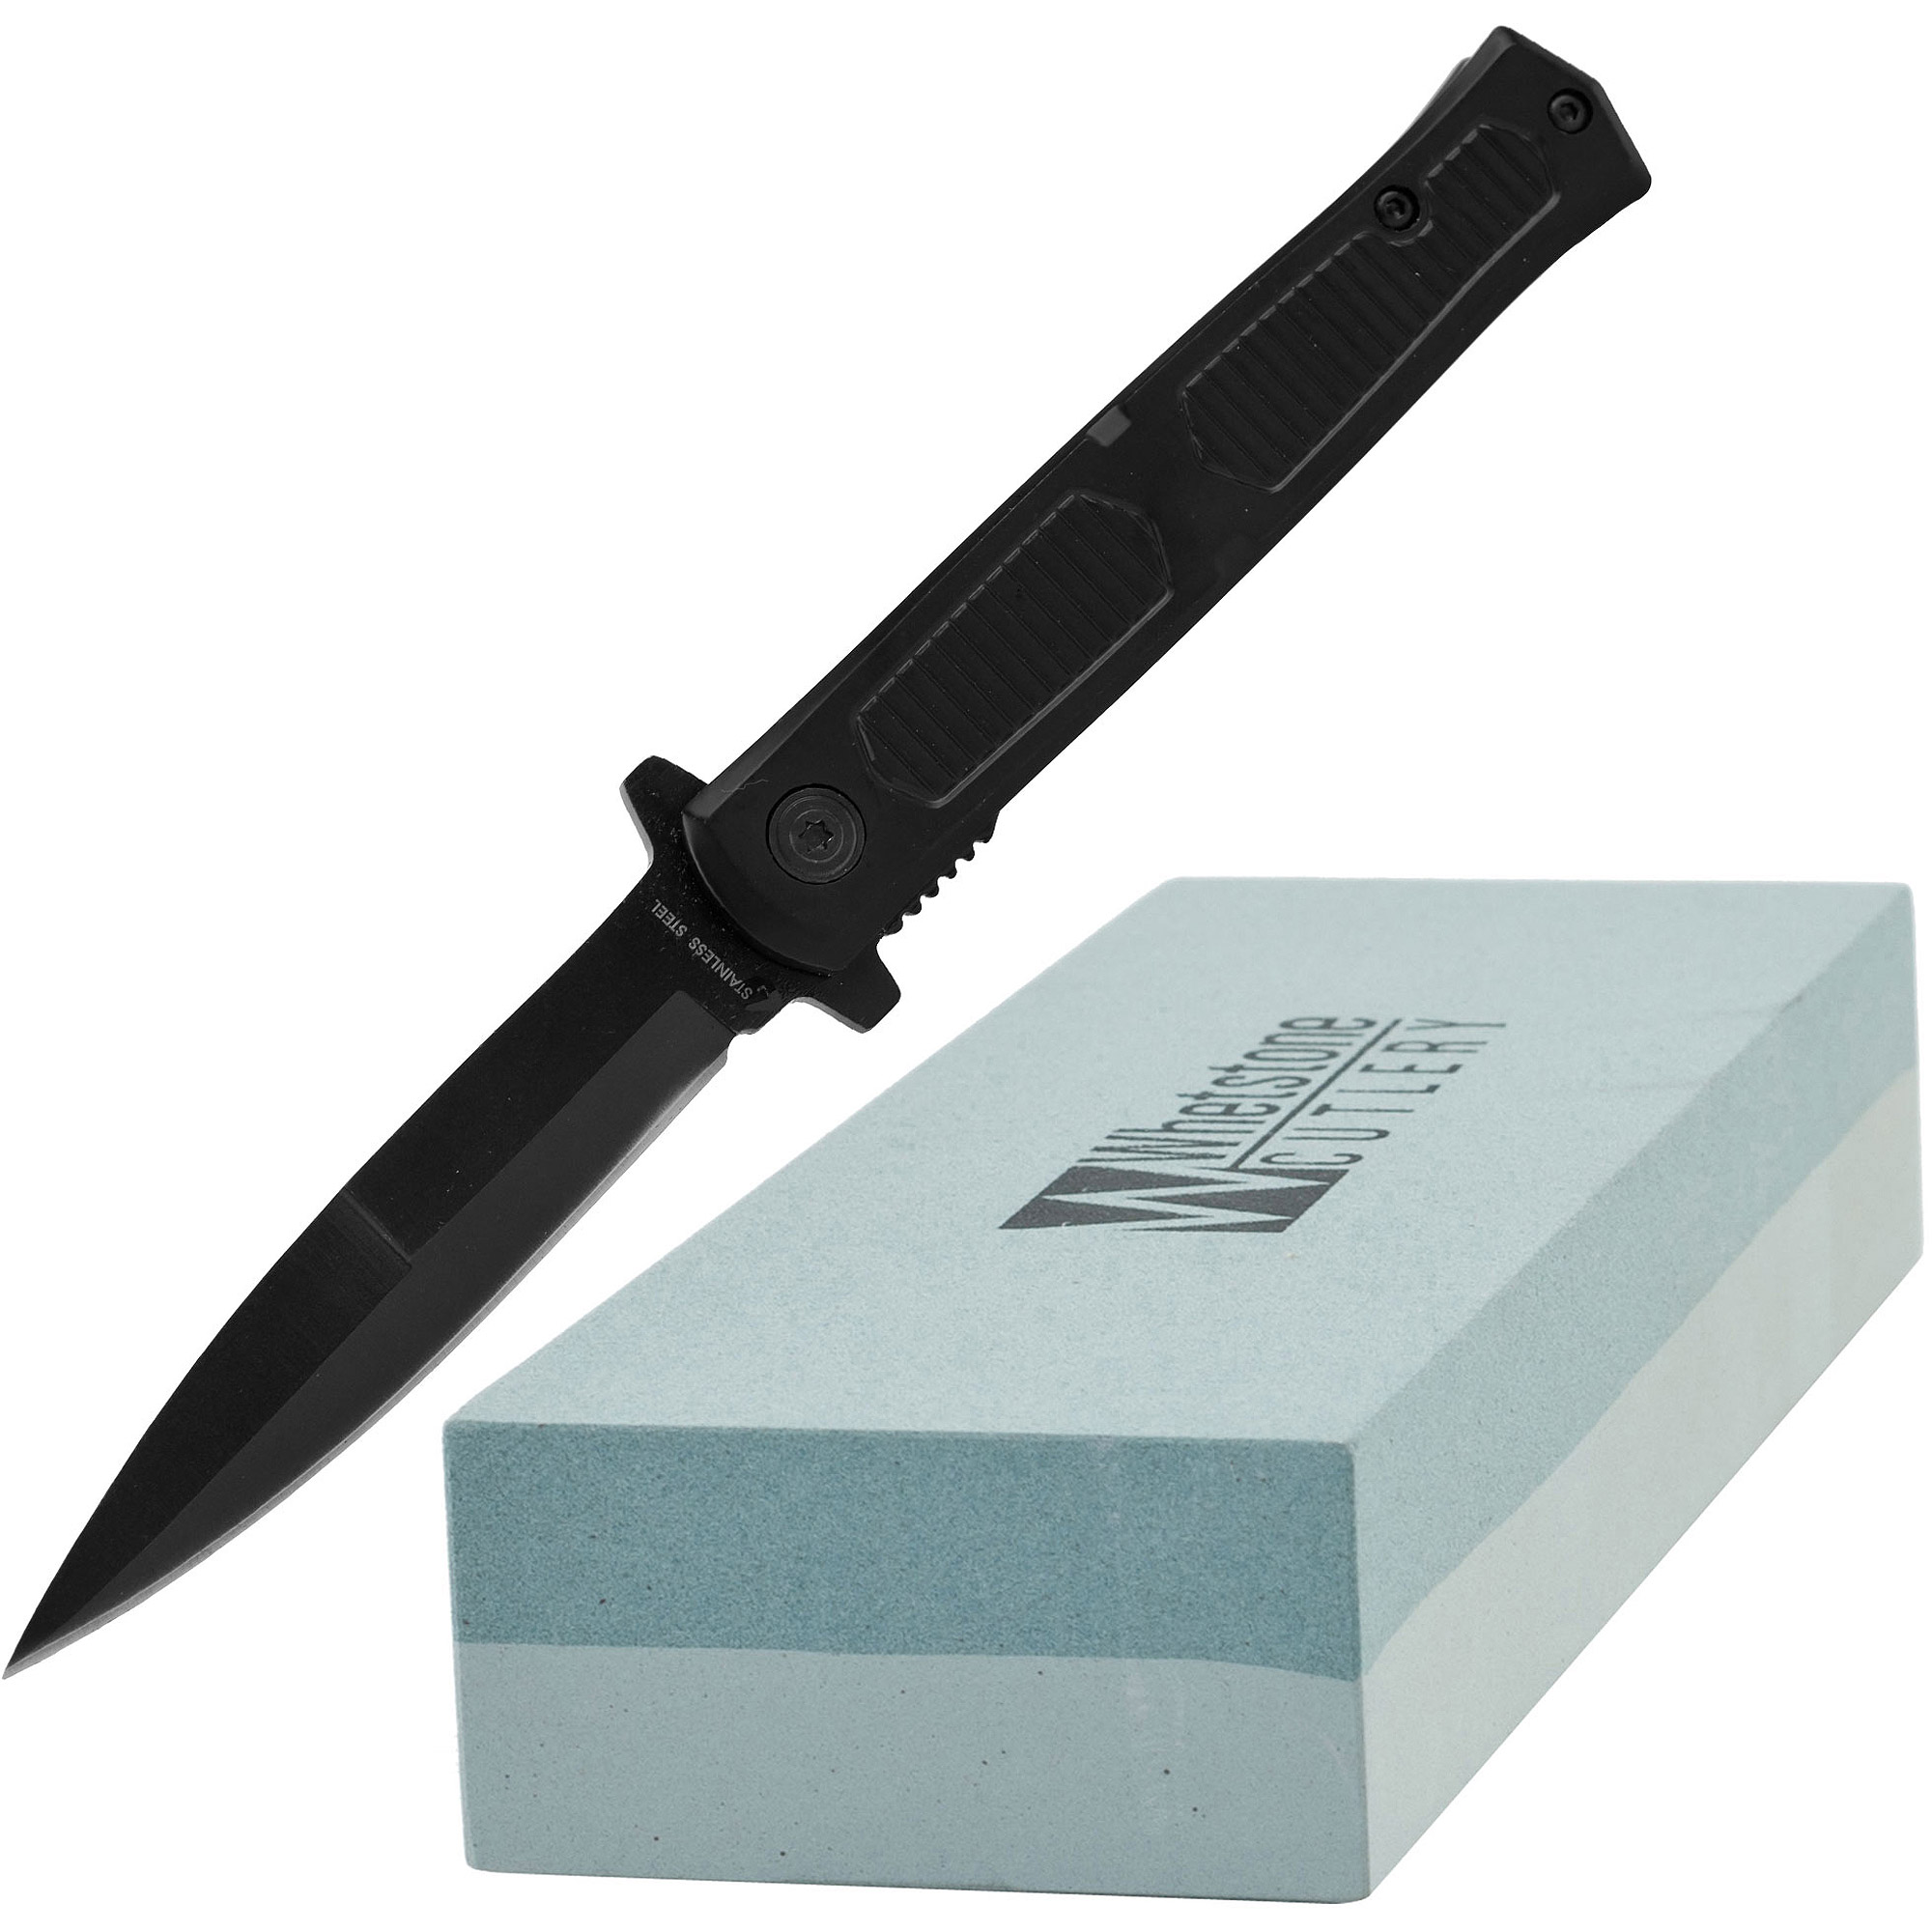 Whetstone Slimline Pocket Knife and 2-Sided Sharpening Stone